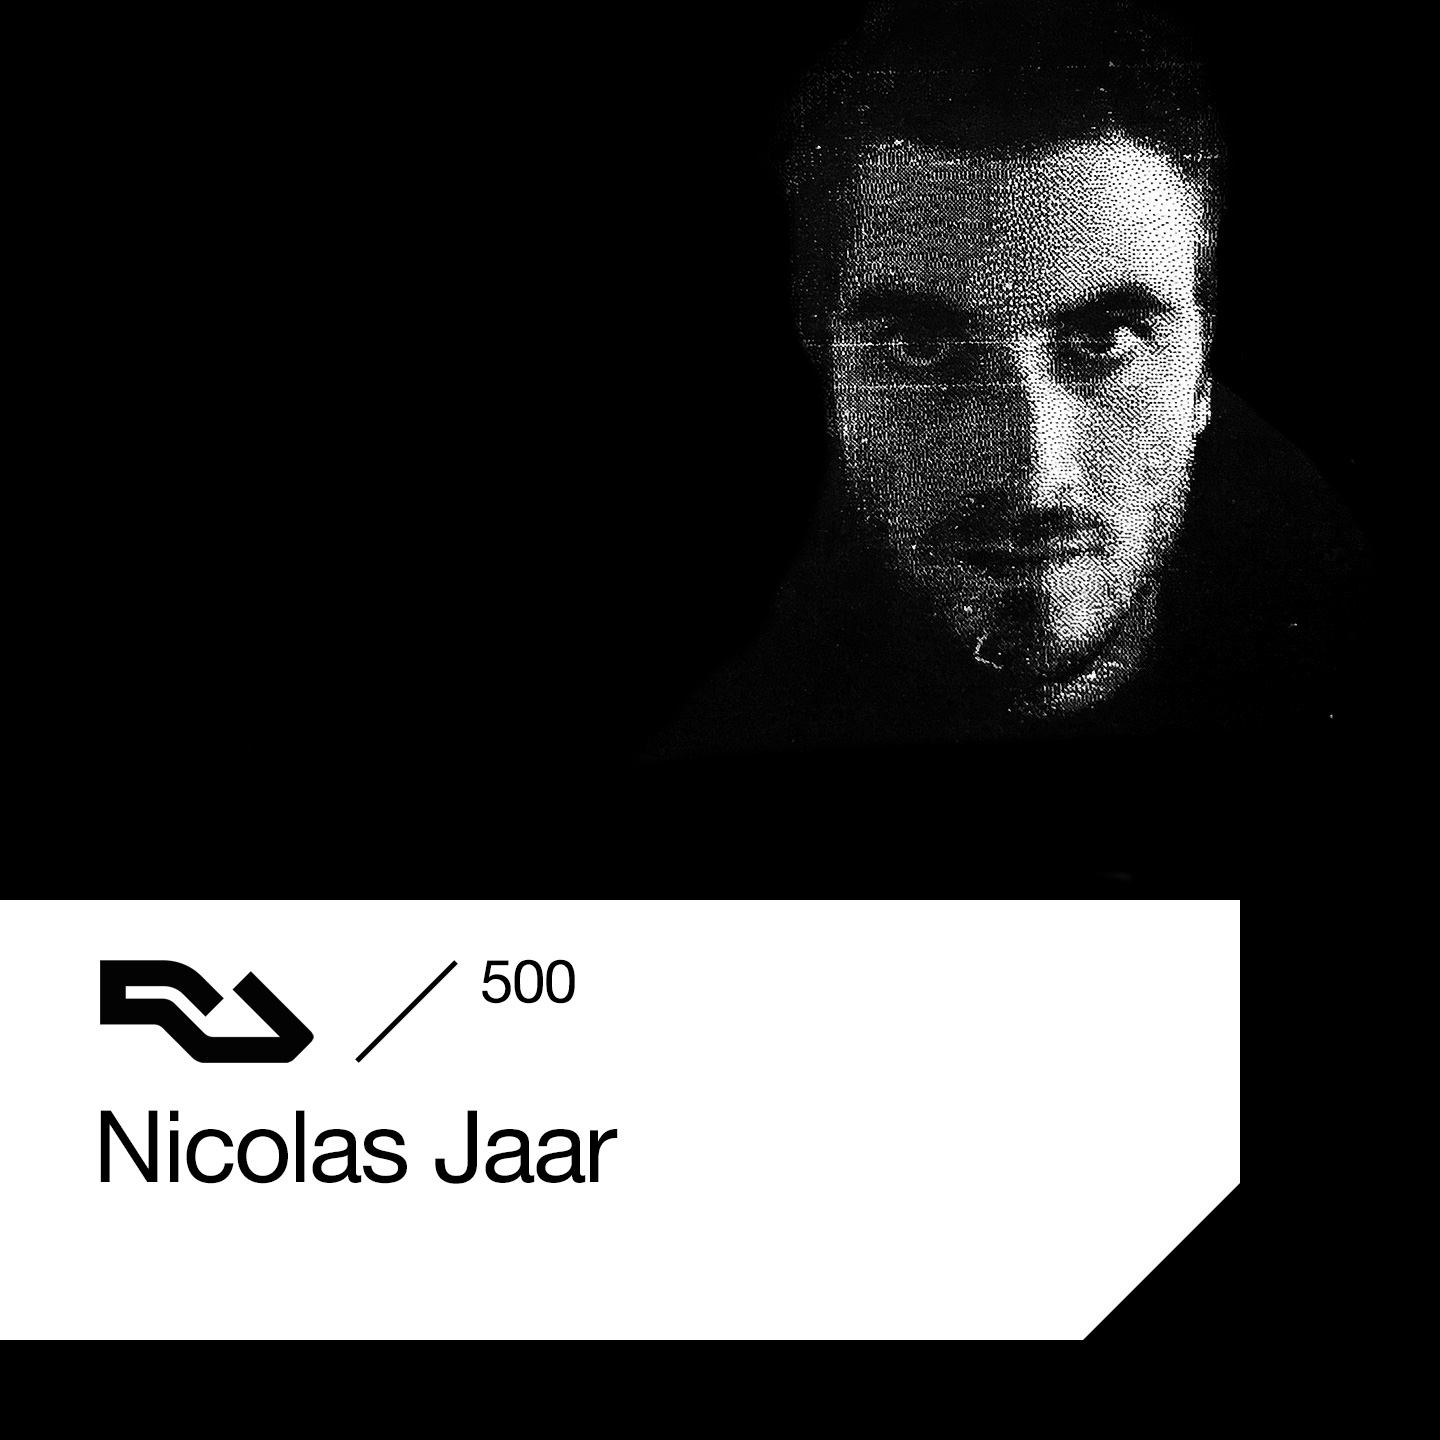 download → Nicolas Jaar - Resident Advisor Podcast 500 - 28-Dec-2015